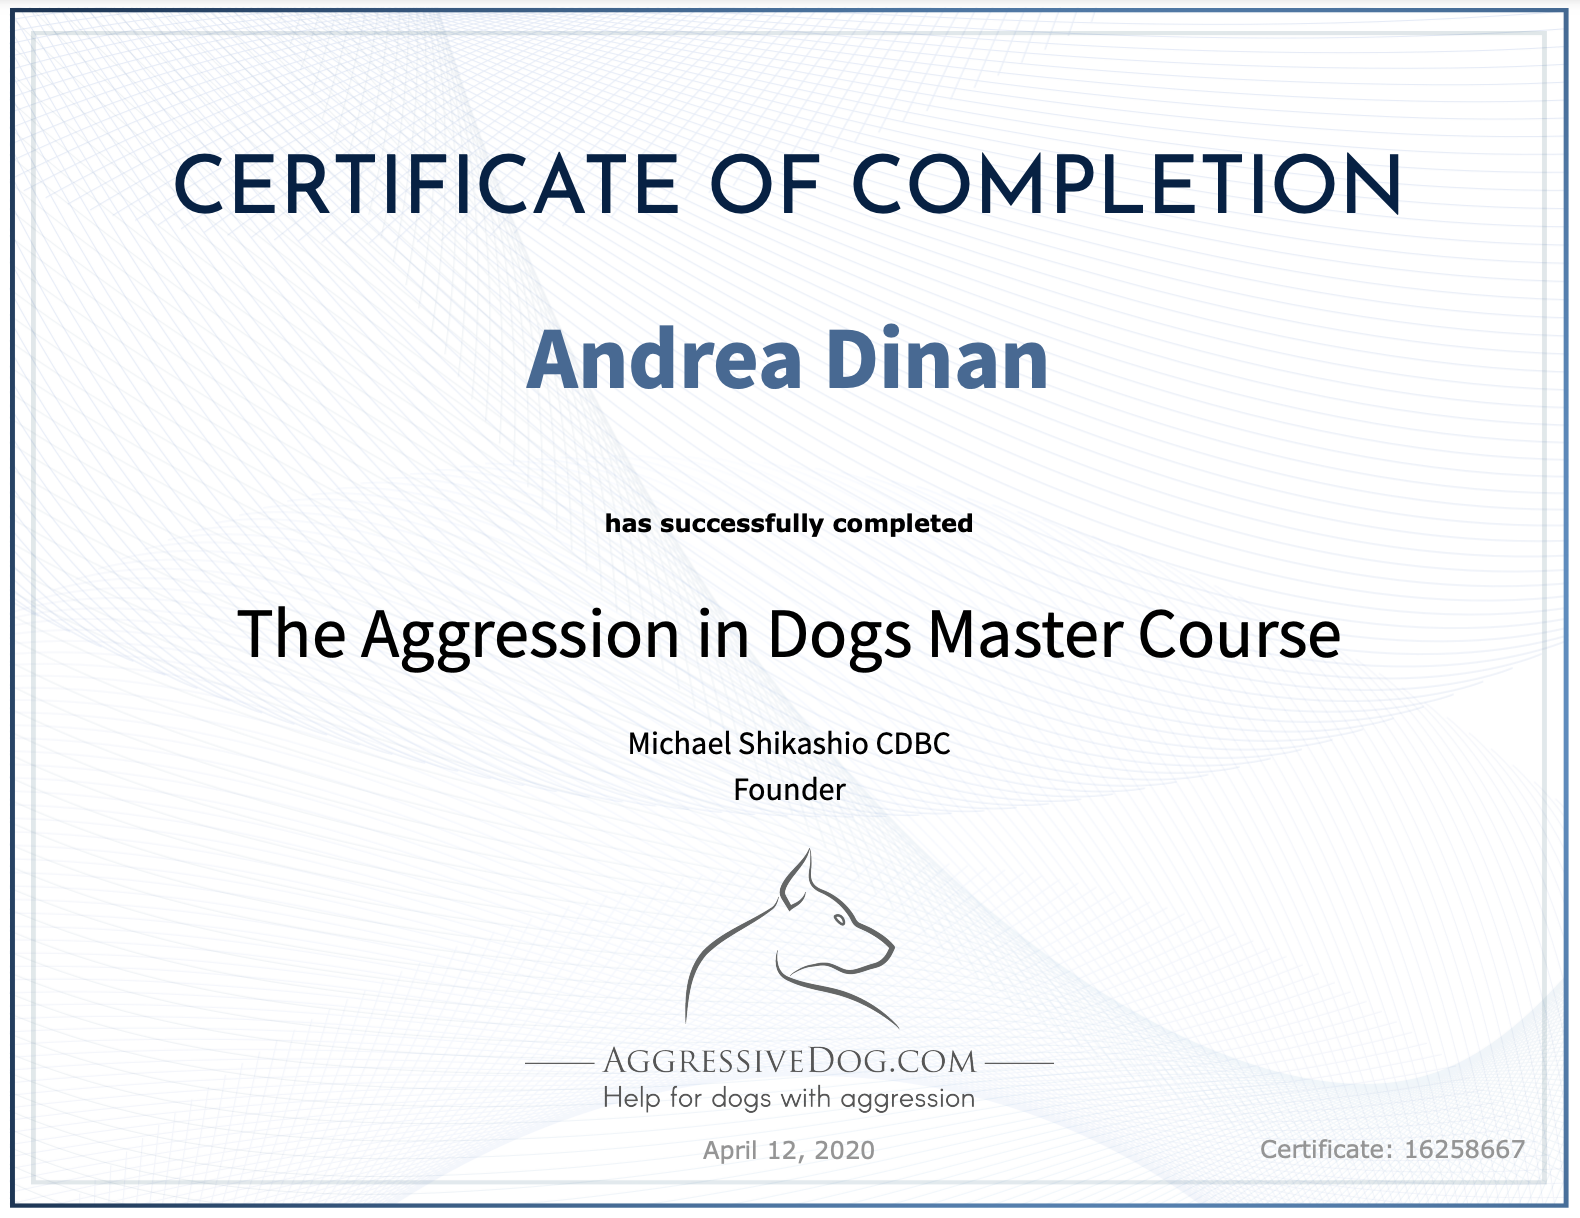 Aggression in Dogs Master Course - Andrea Dinan